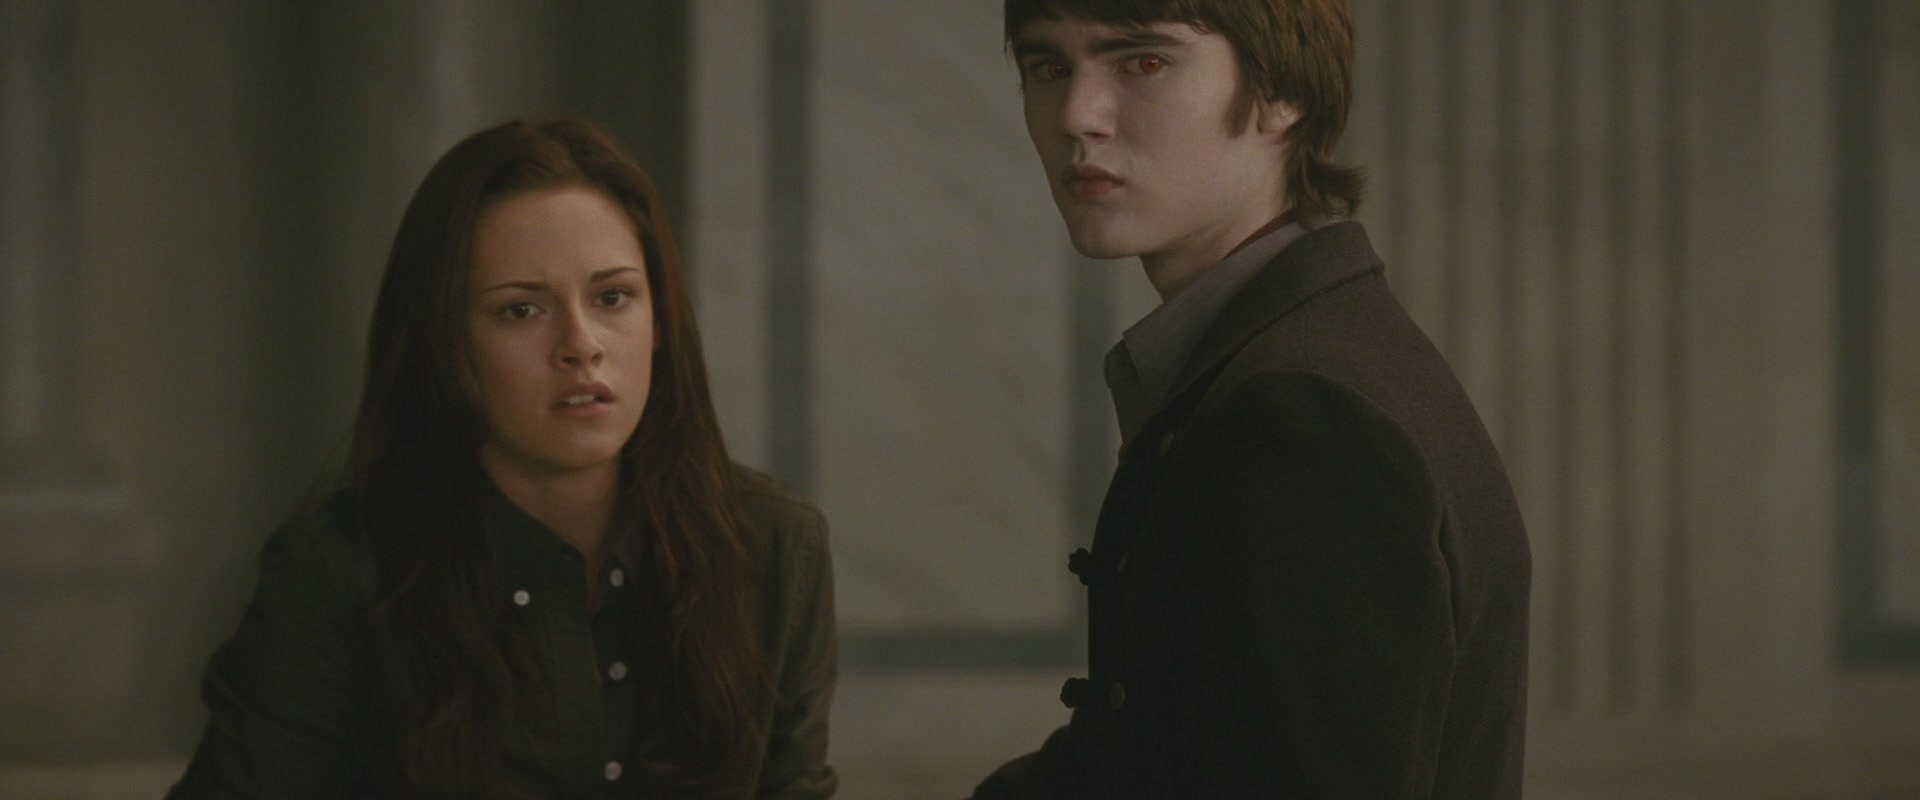 New Moon HD Screencaps - Cameron Bright Image (11008141 ...